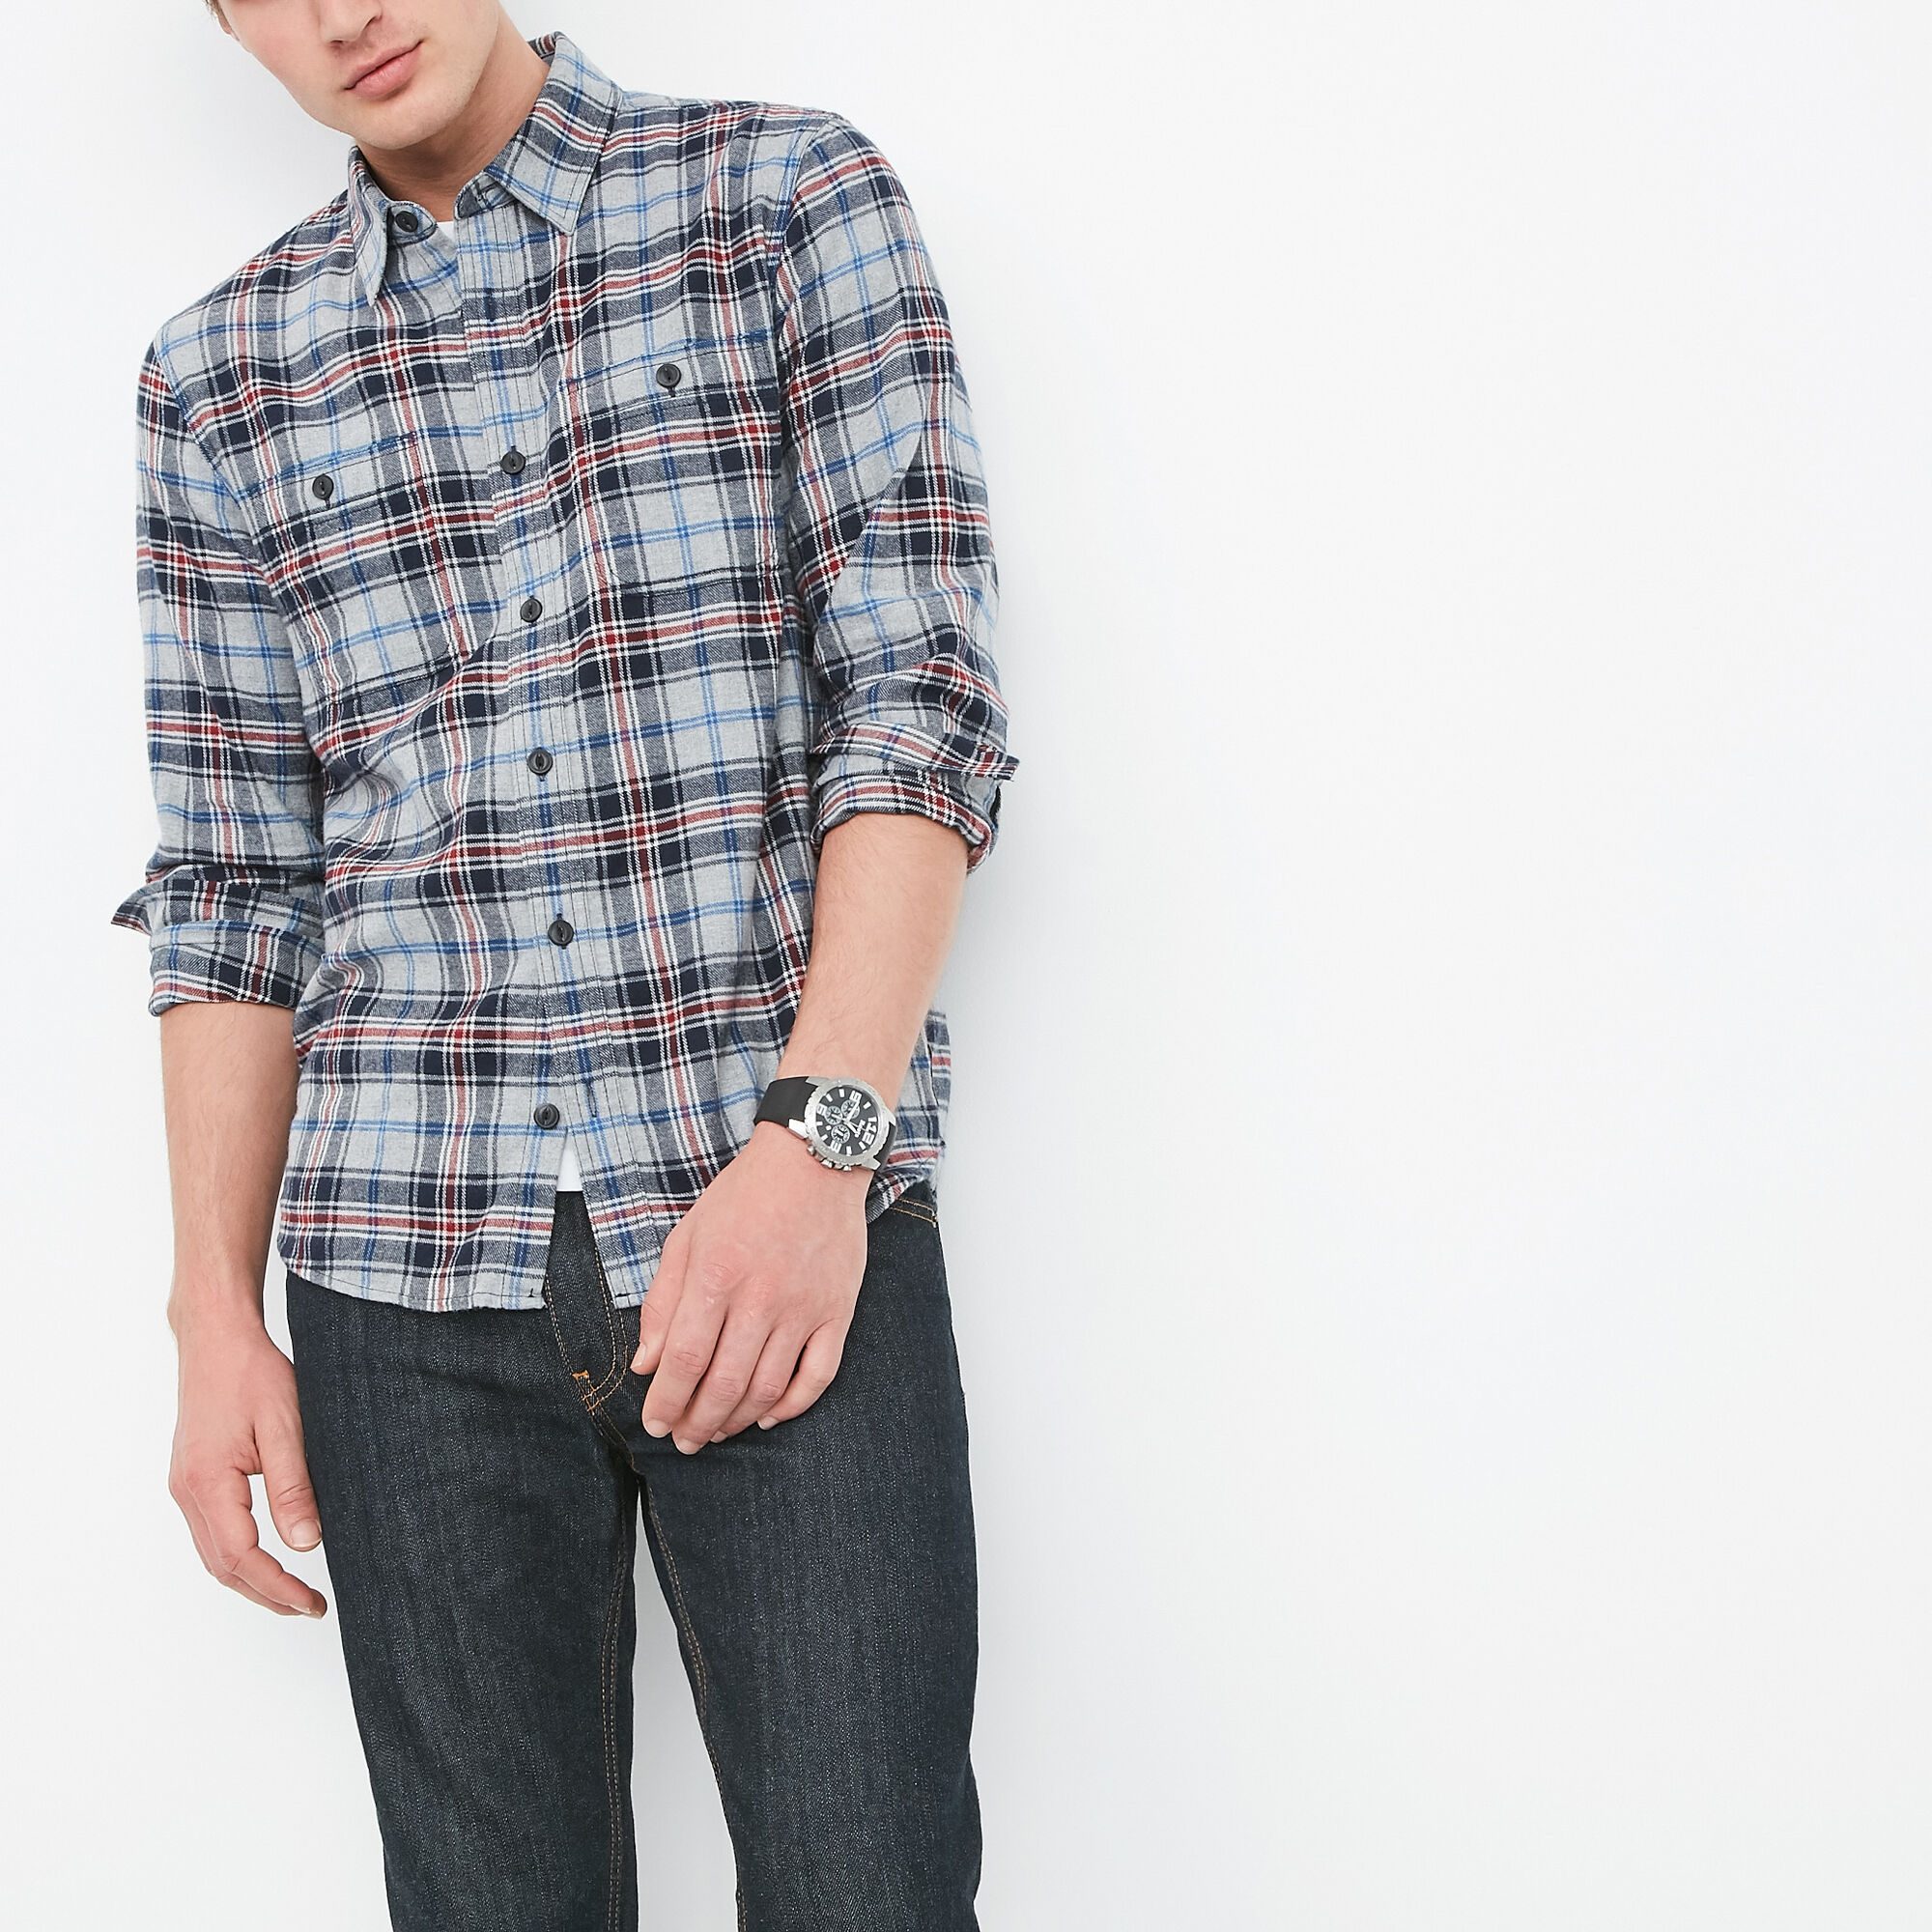 Resolute Flannel Shirt